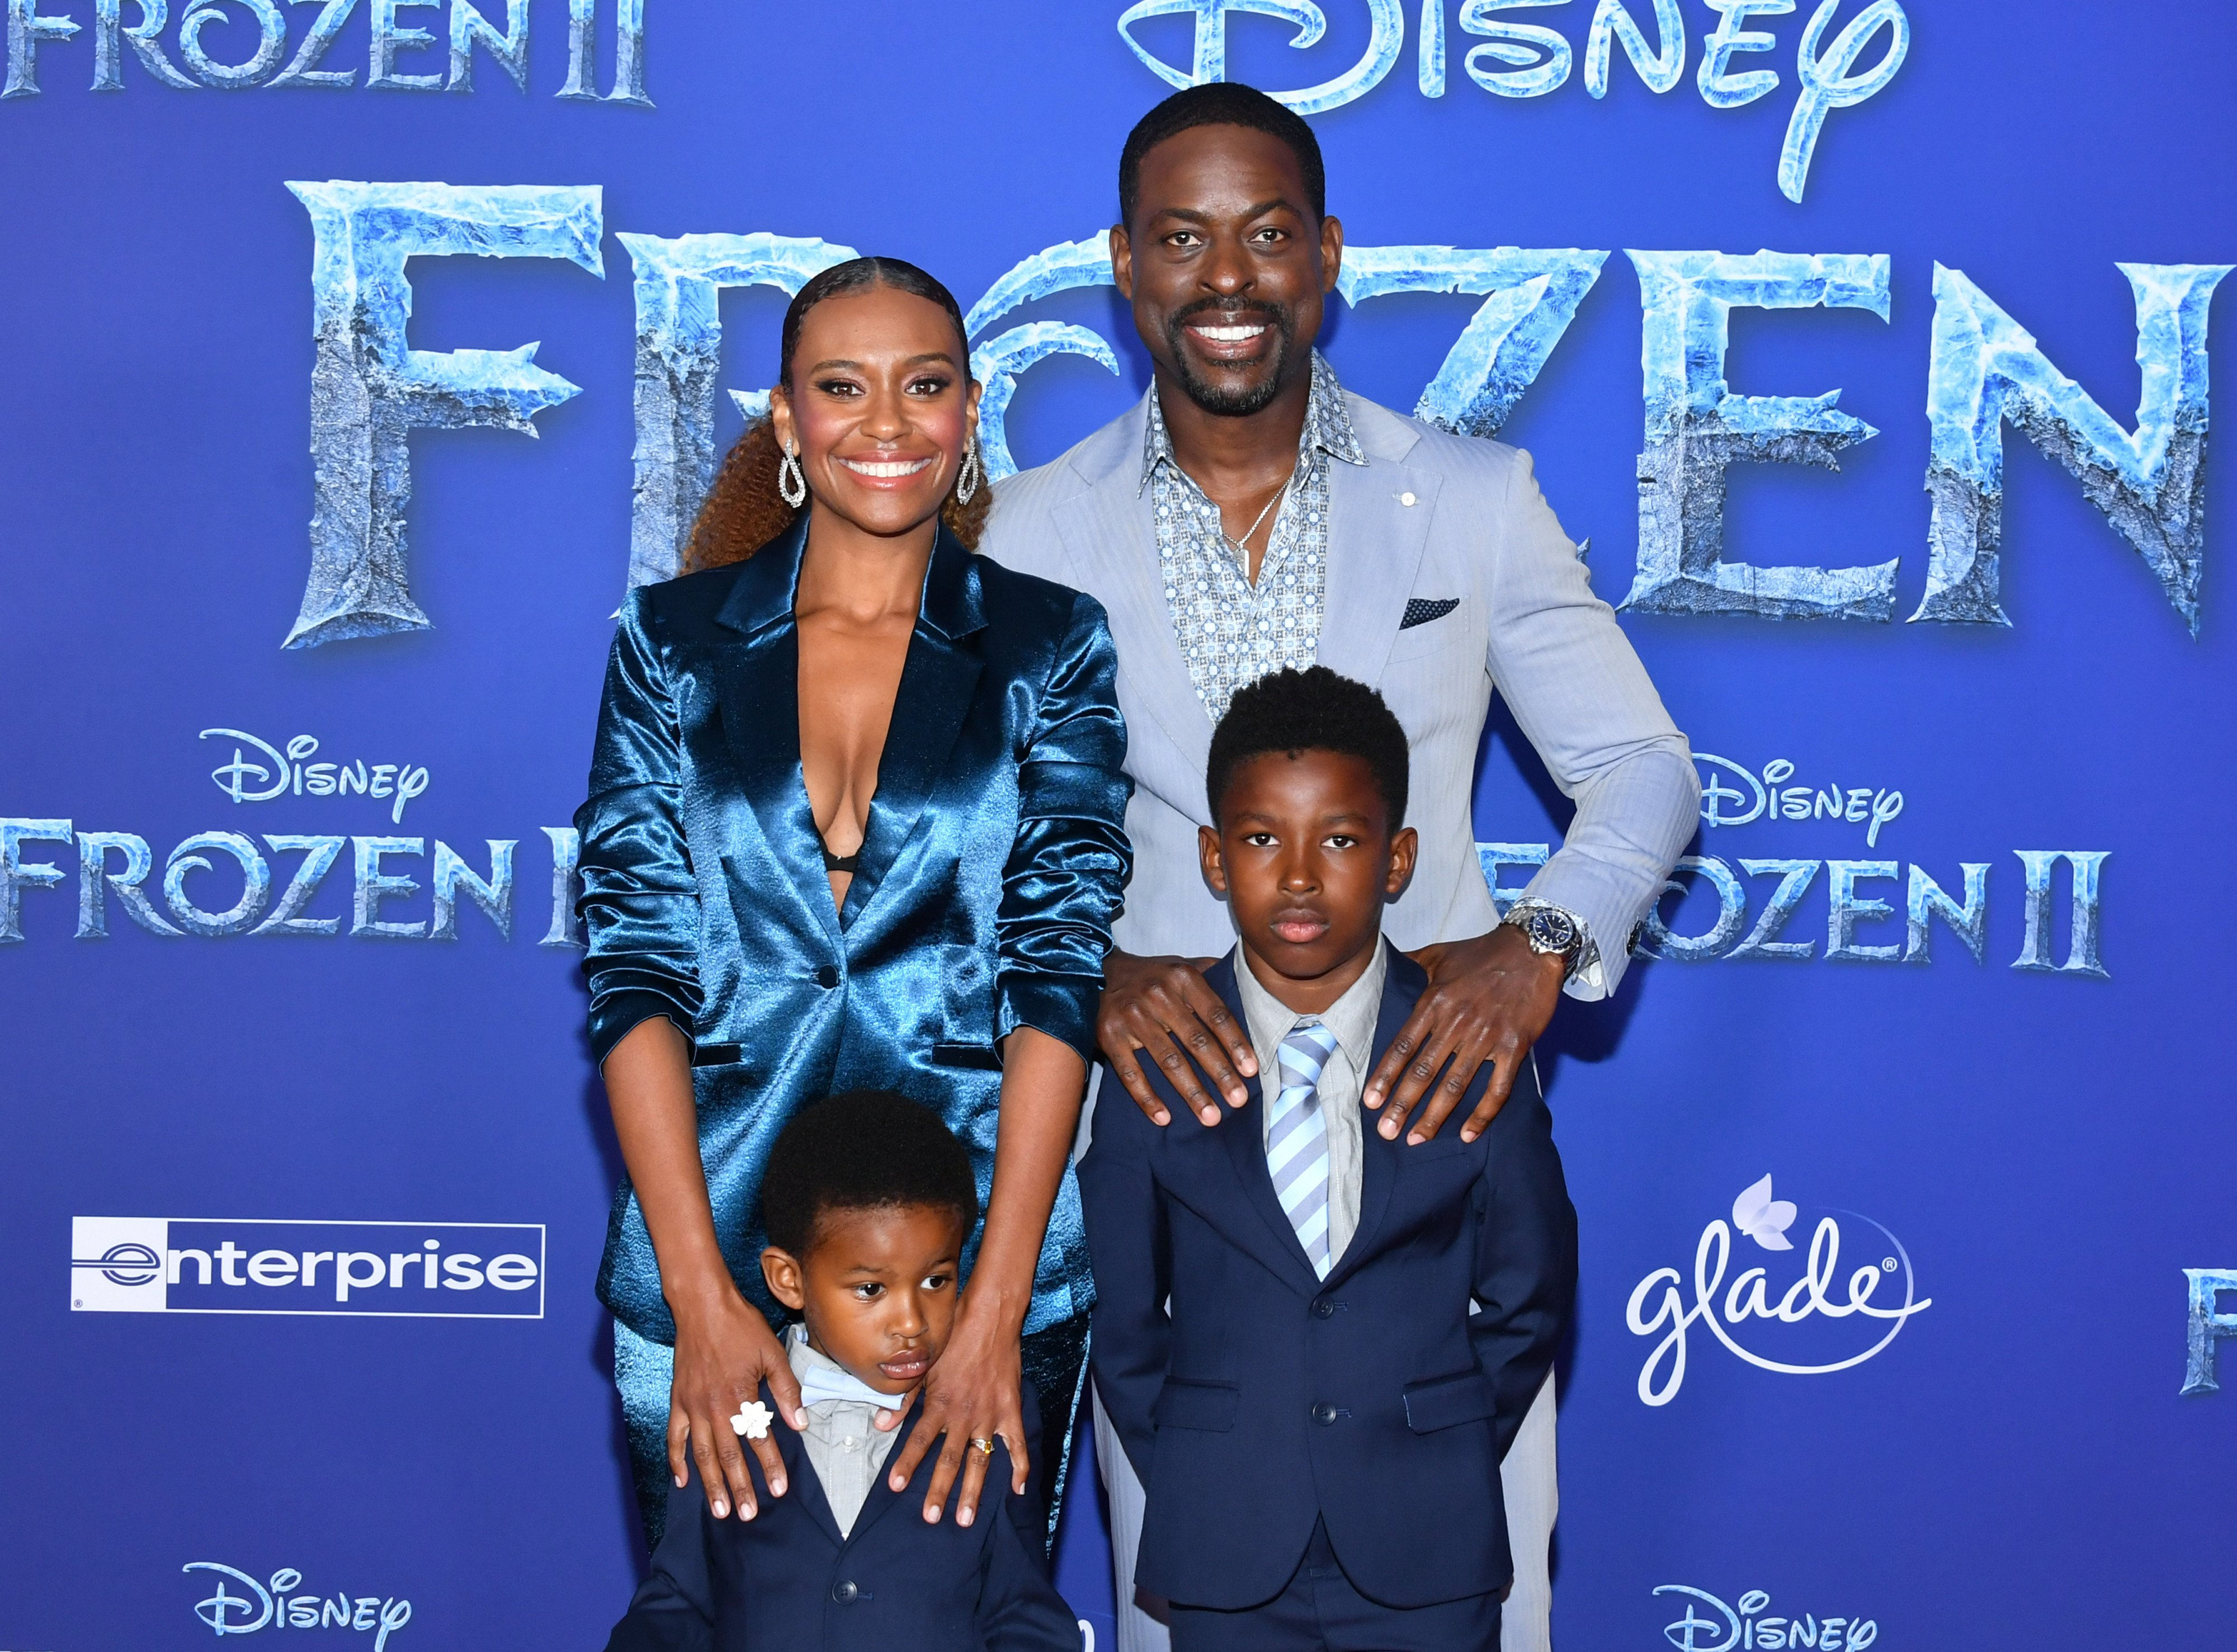 """Ryan Michelle Bathe & Sterling K. Brown with their sons at the premiere of """"Frozen 2"""" on Nov. 07, 2019 in California 